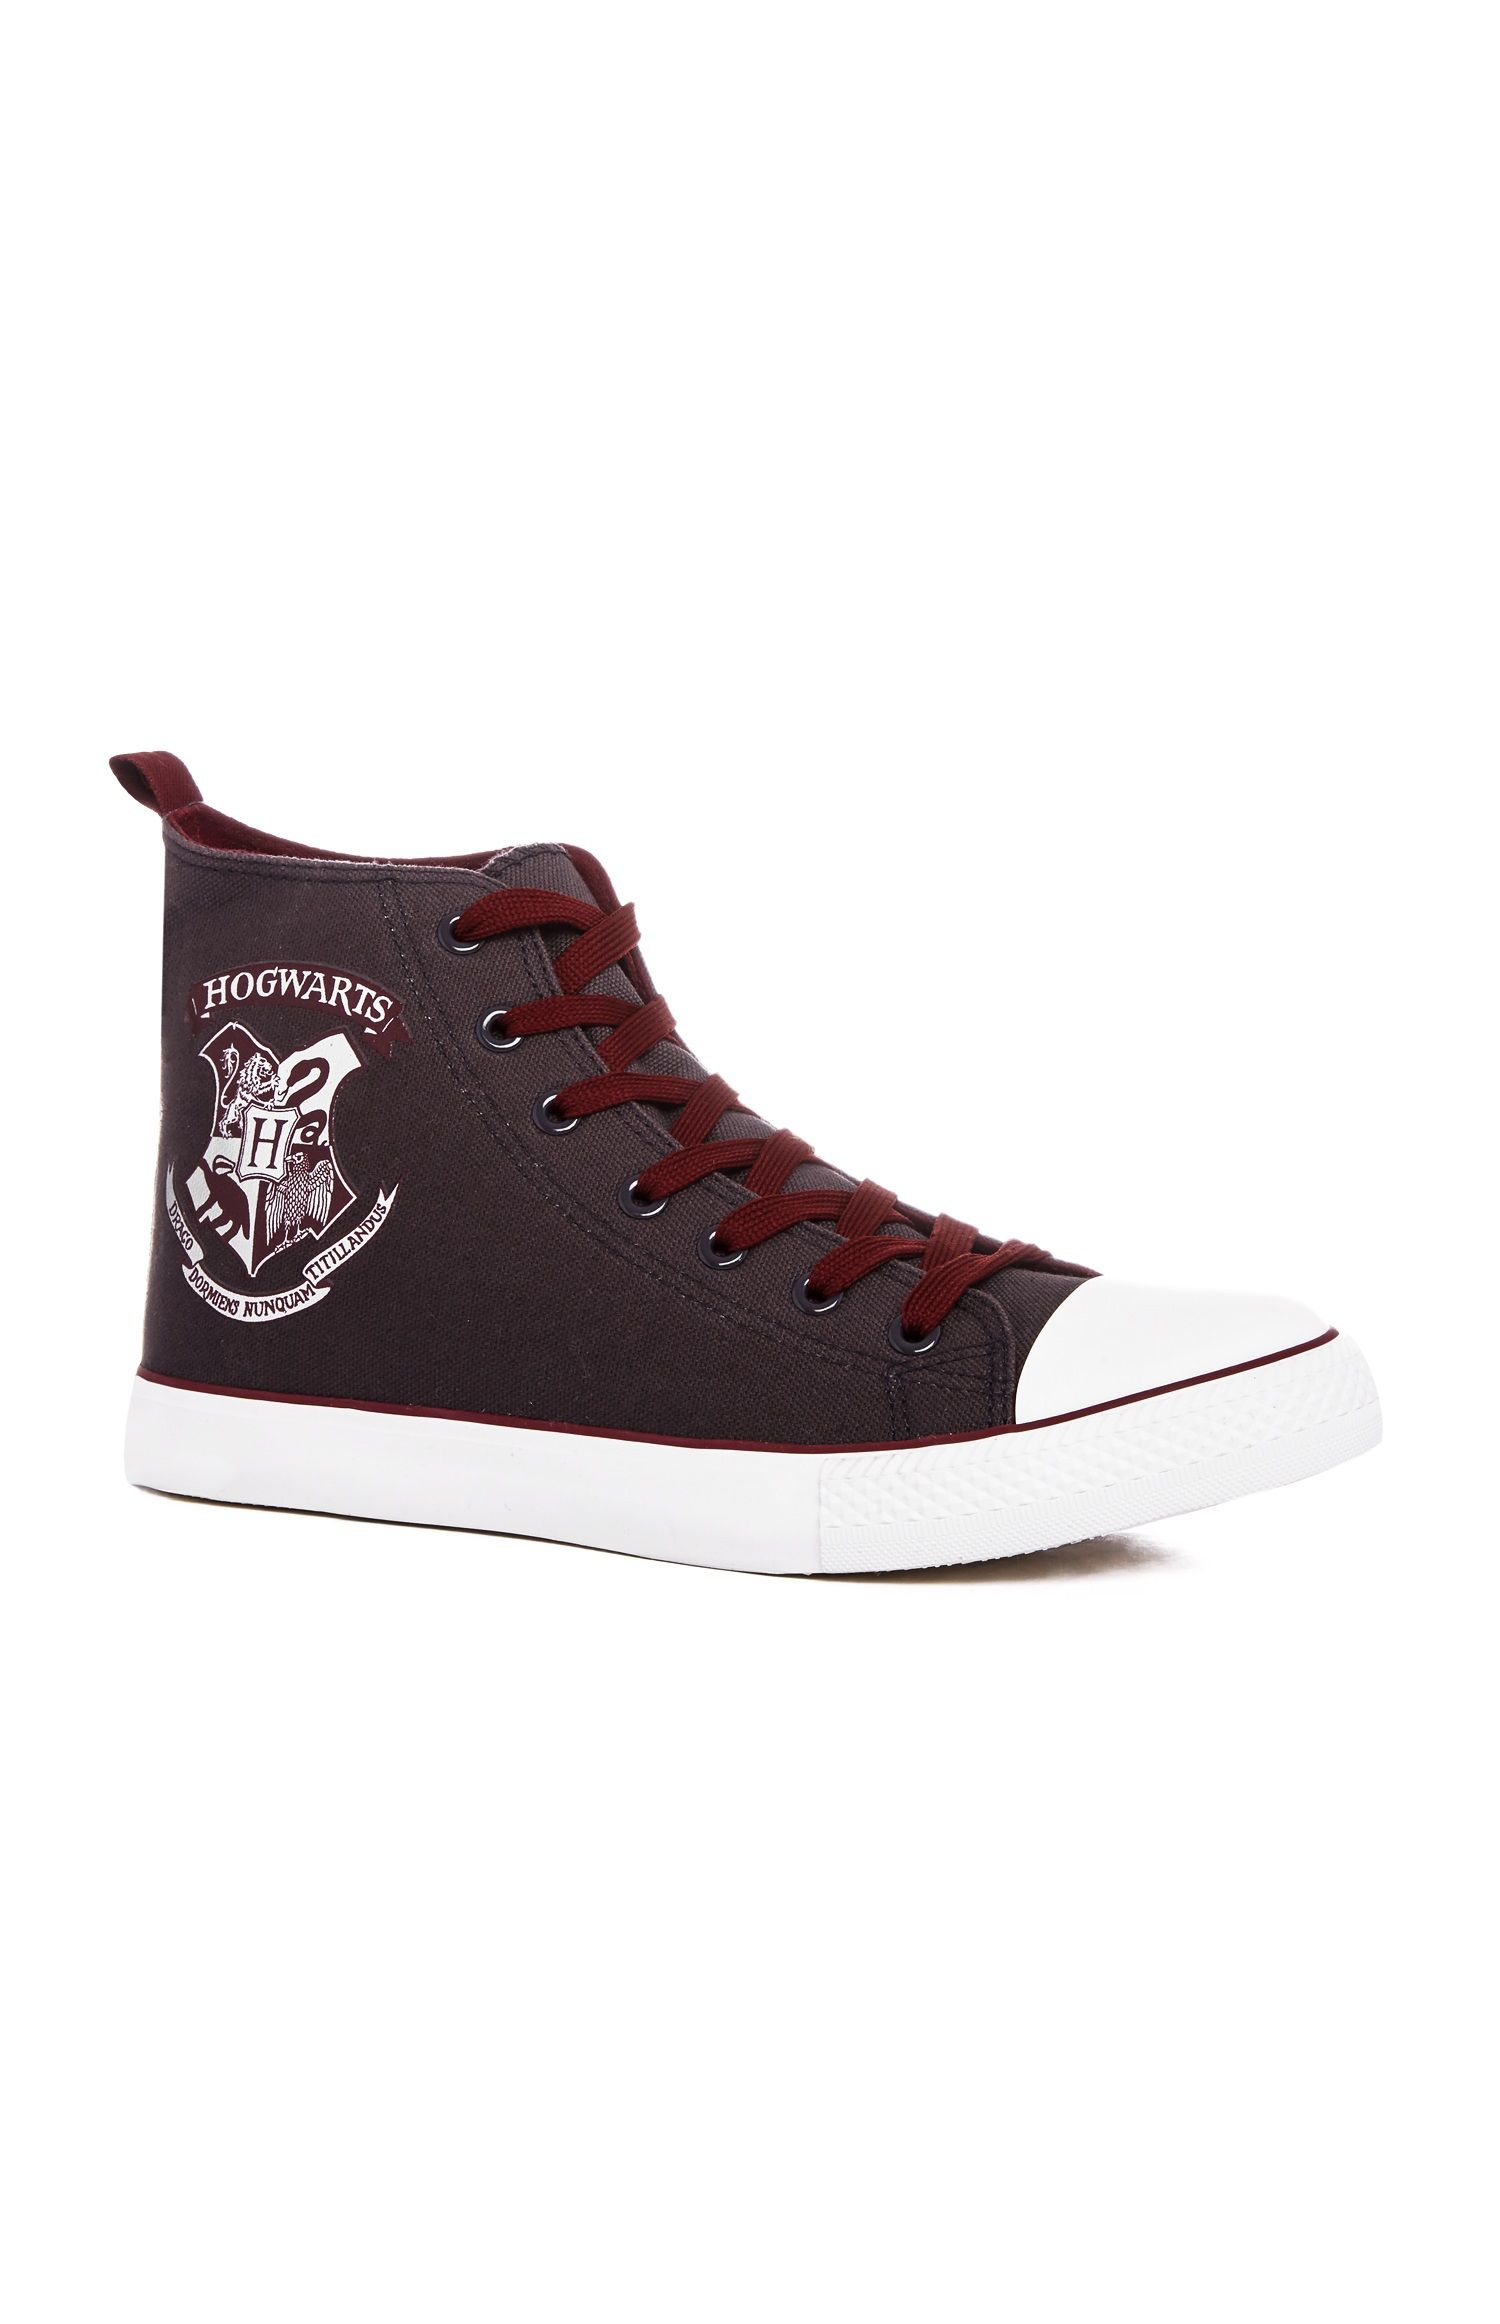 b2eff72d2232 Primark - Harry Potter High Top Trainer | outfits in 2019 | High ...